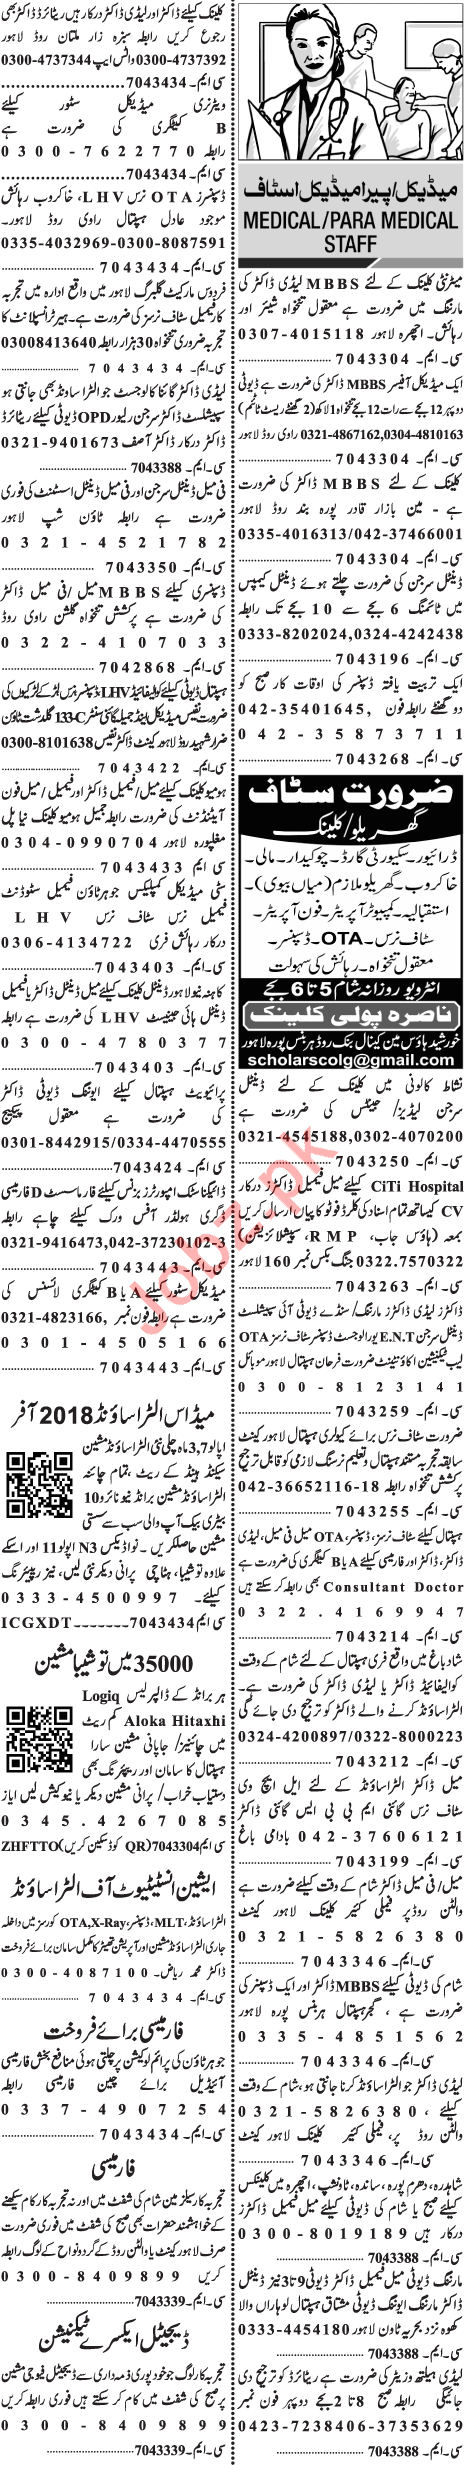 Doctor, Nurse & Medical Staff Jobs in Lahore